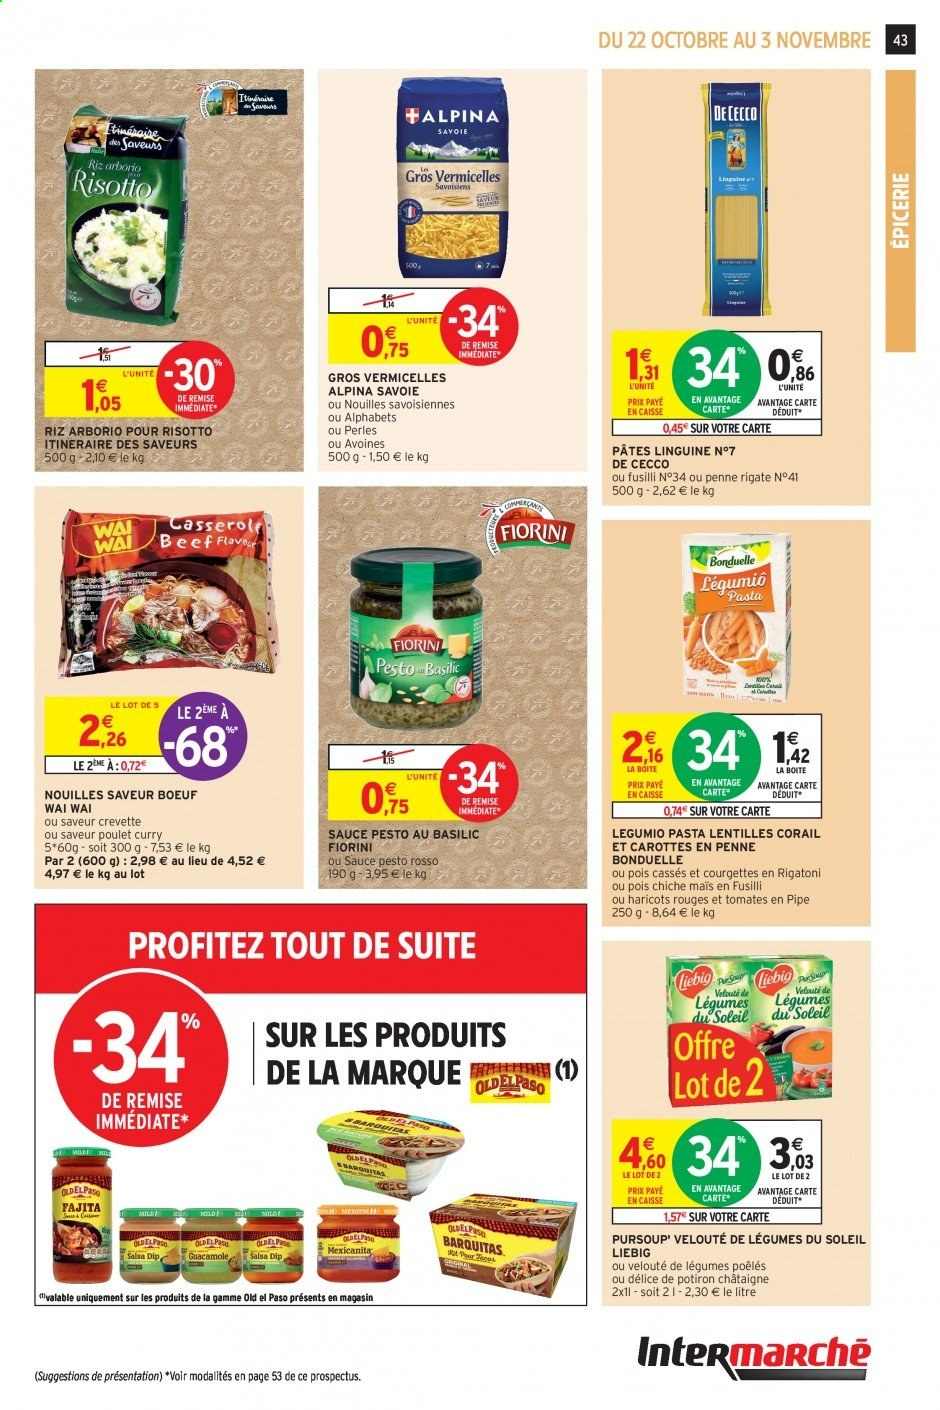 Catalogue Intermarché - 22.10.2019 - 03.11.2019. Page 41.